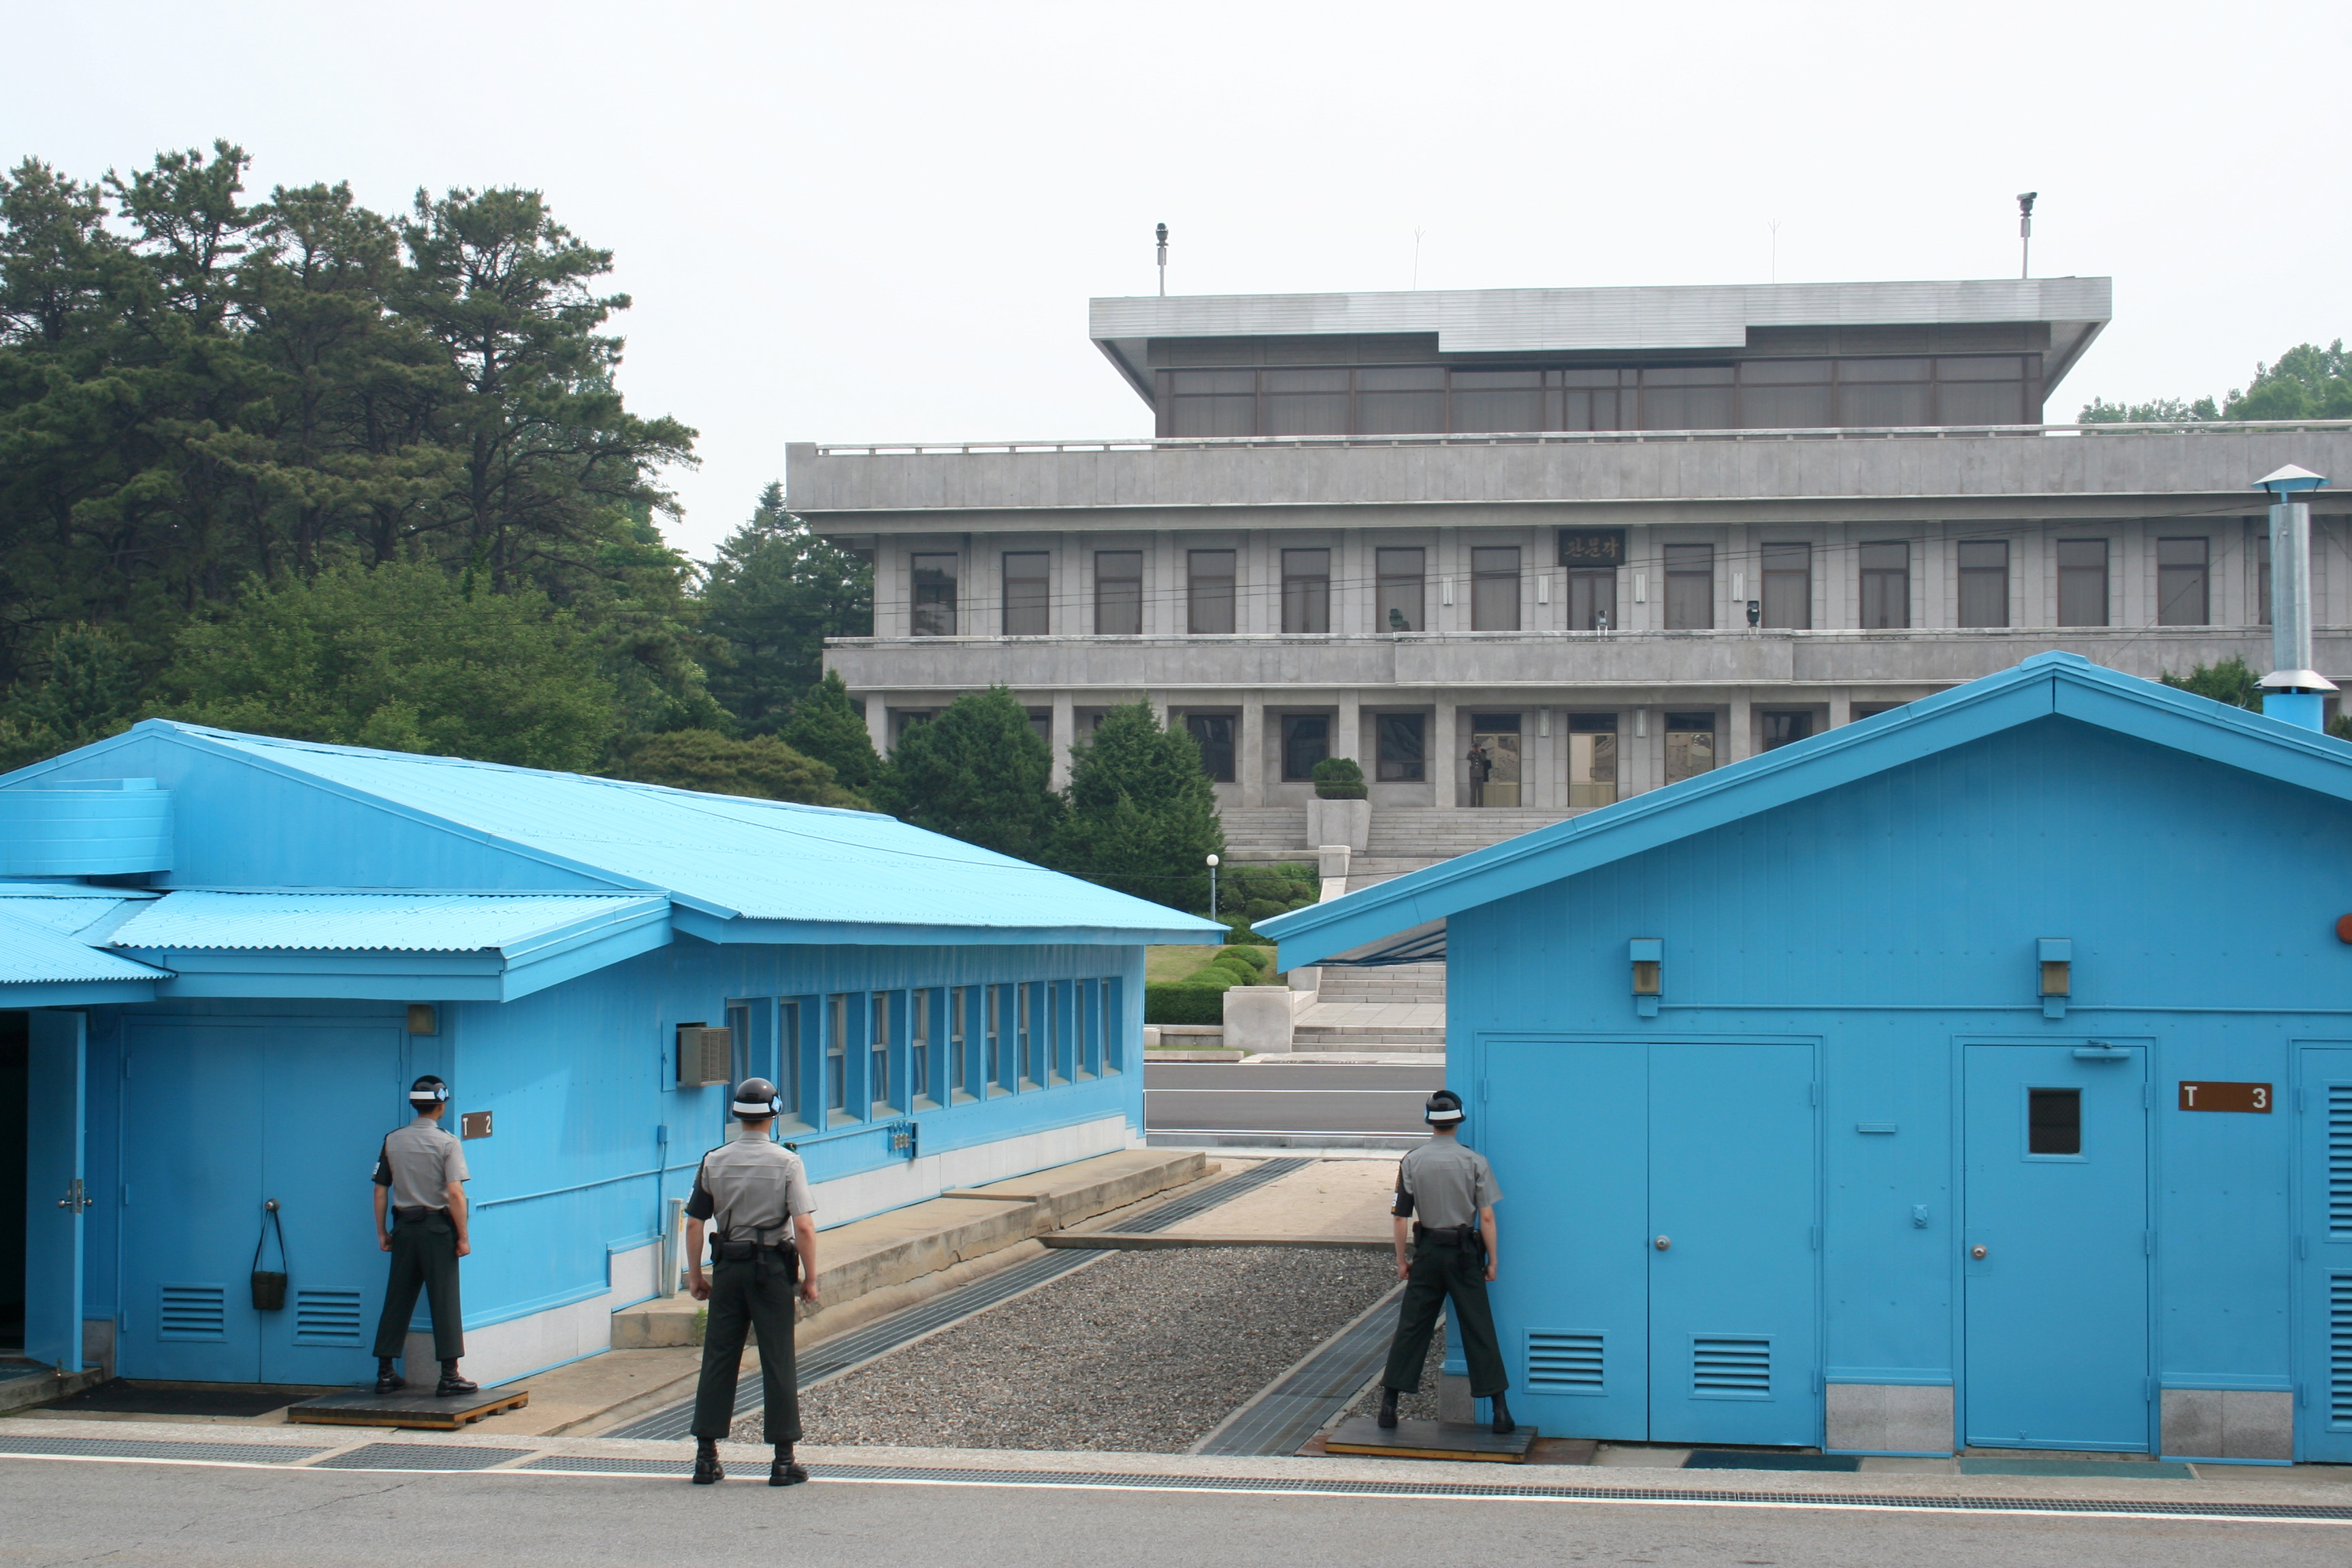 Conference Row at the Joint Security Area in Korea, seen from the South Side. The building in the background is Panmun House. The concrete line running through the huts is the MDL, the official border between the two countries. The ROK solders stand with half of their body obscured in order to provide a smaller target to those on the North, as well as to be able to signal unseen if necessary.